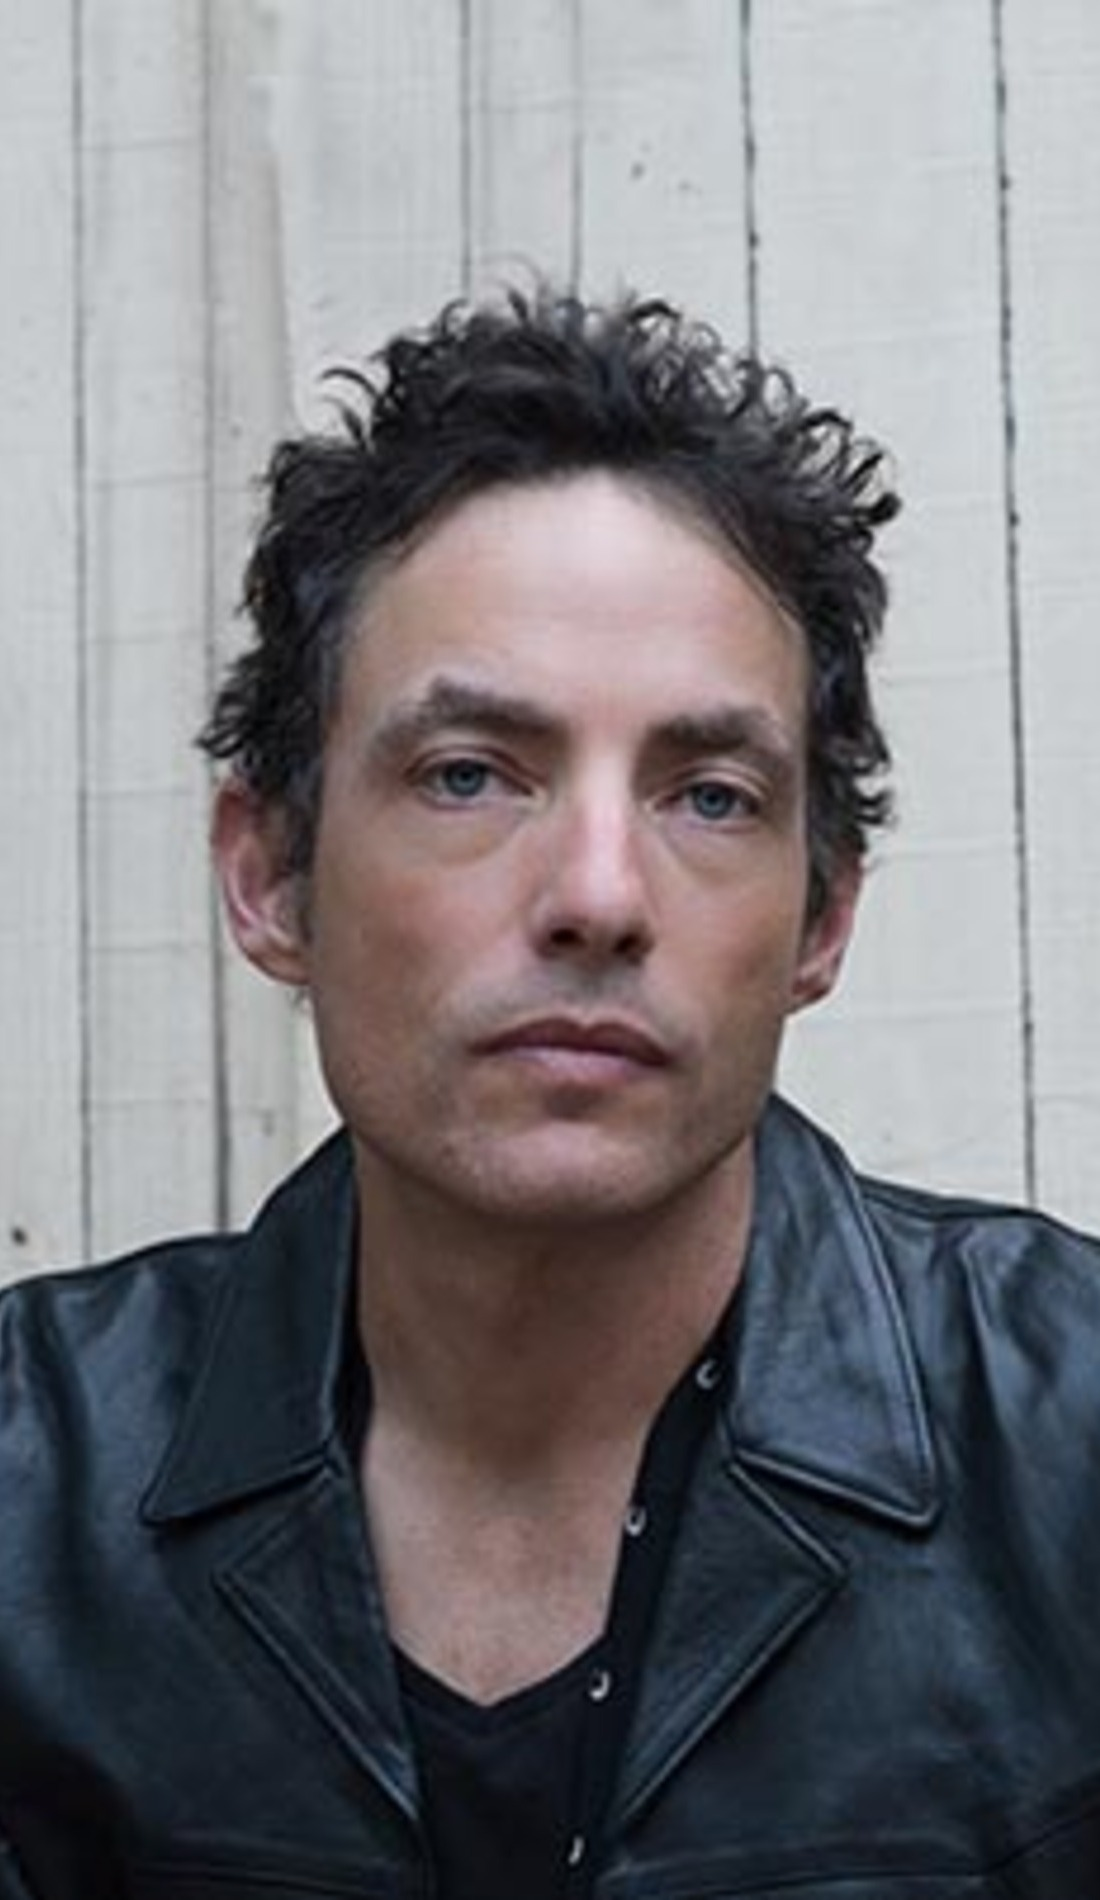 A The Wallflowers live event